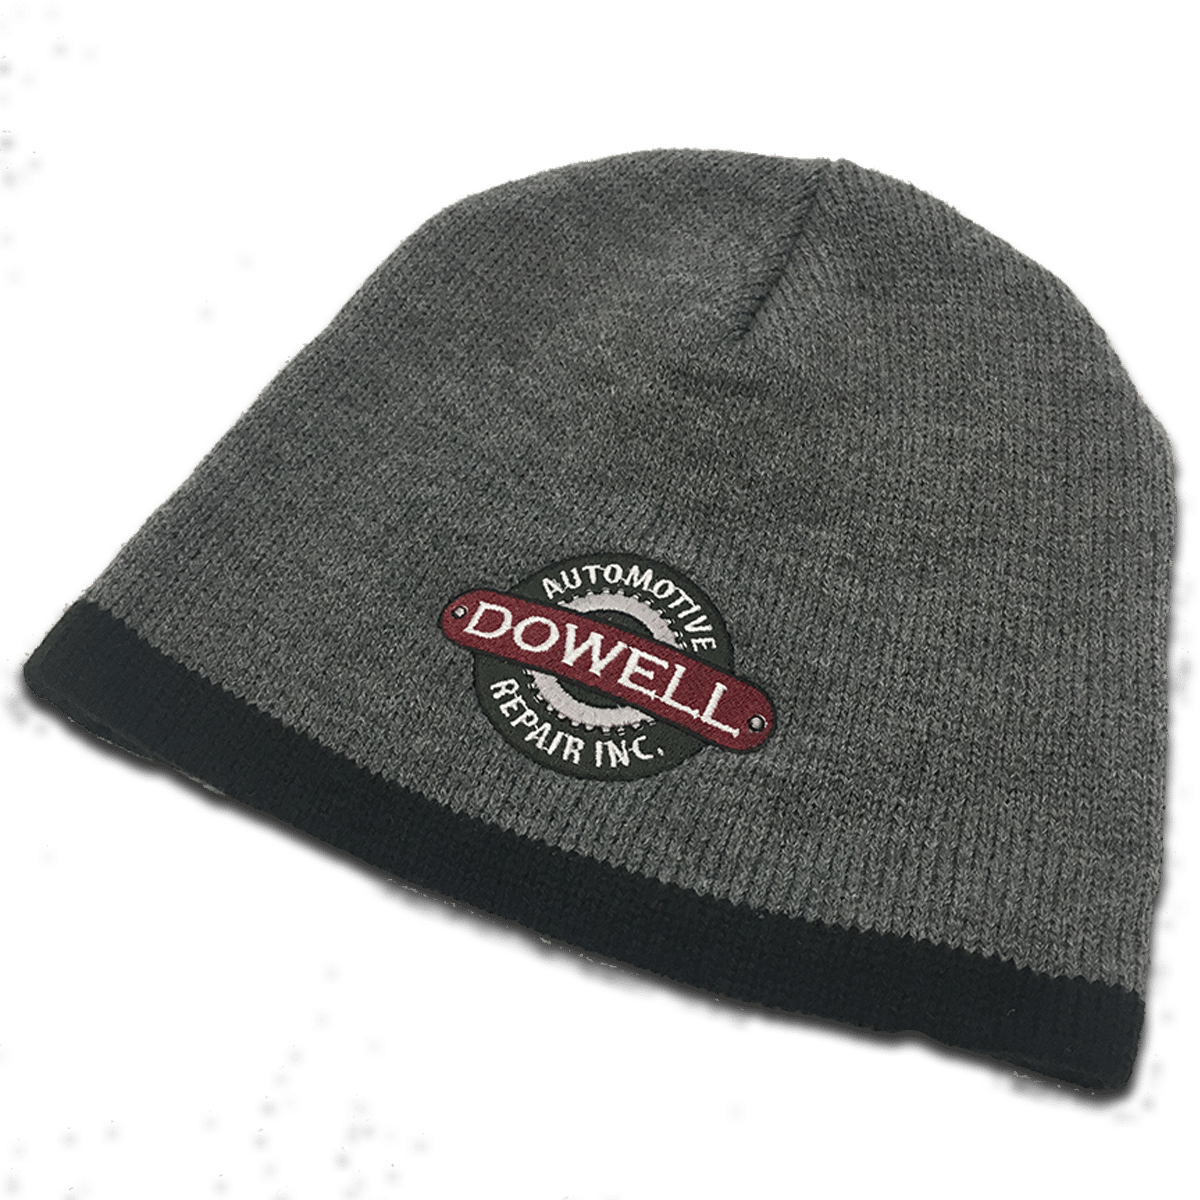 Dowell Apparel Hat